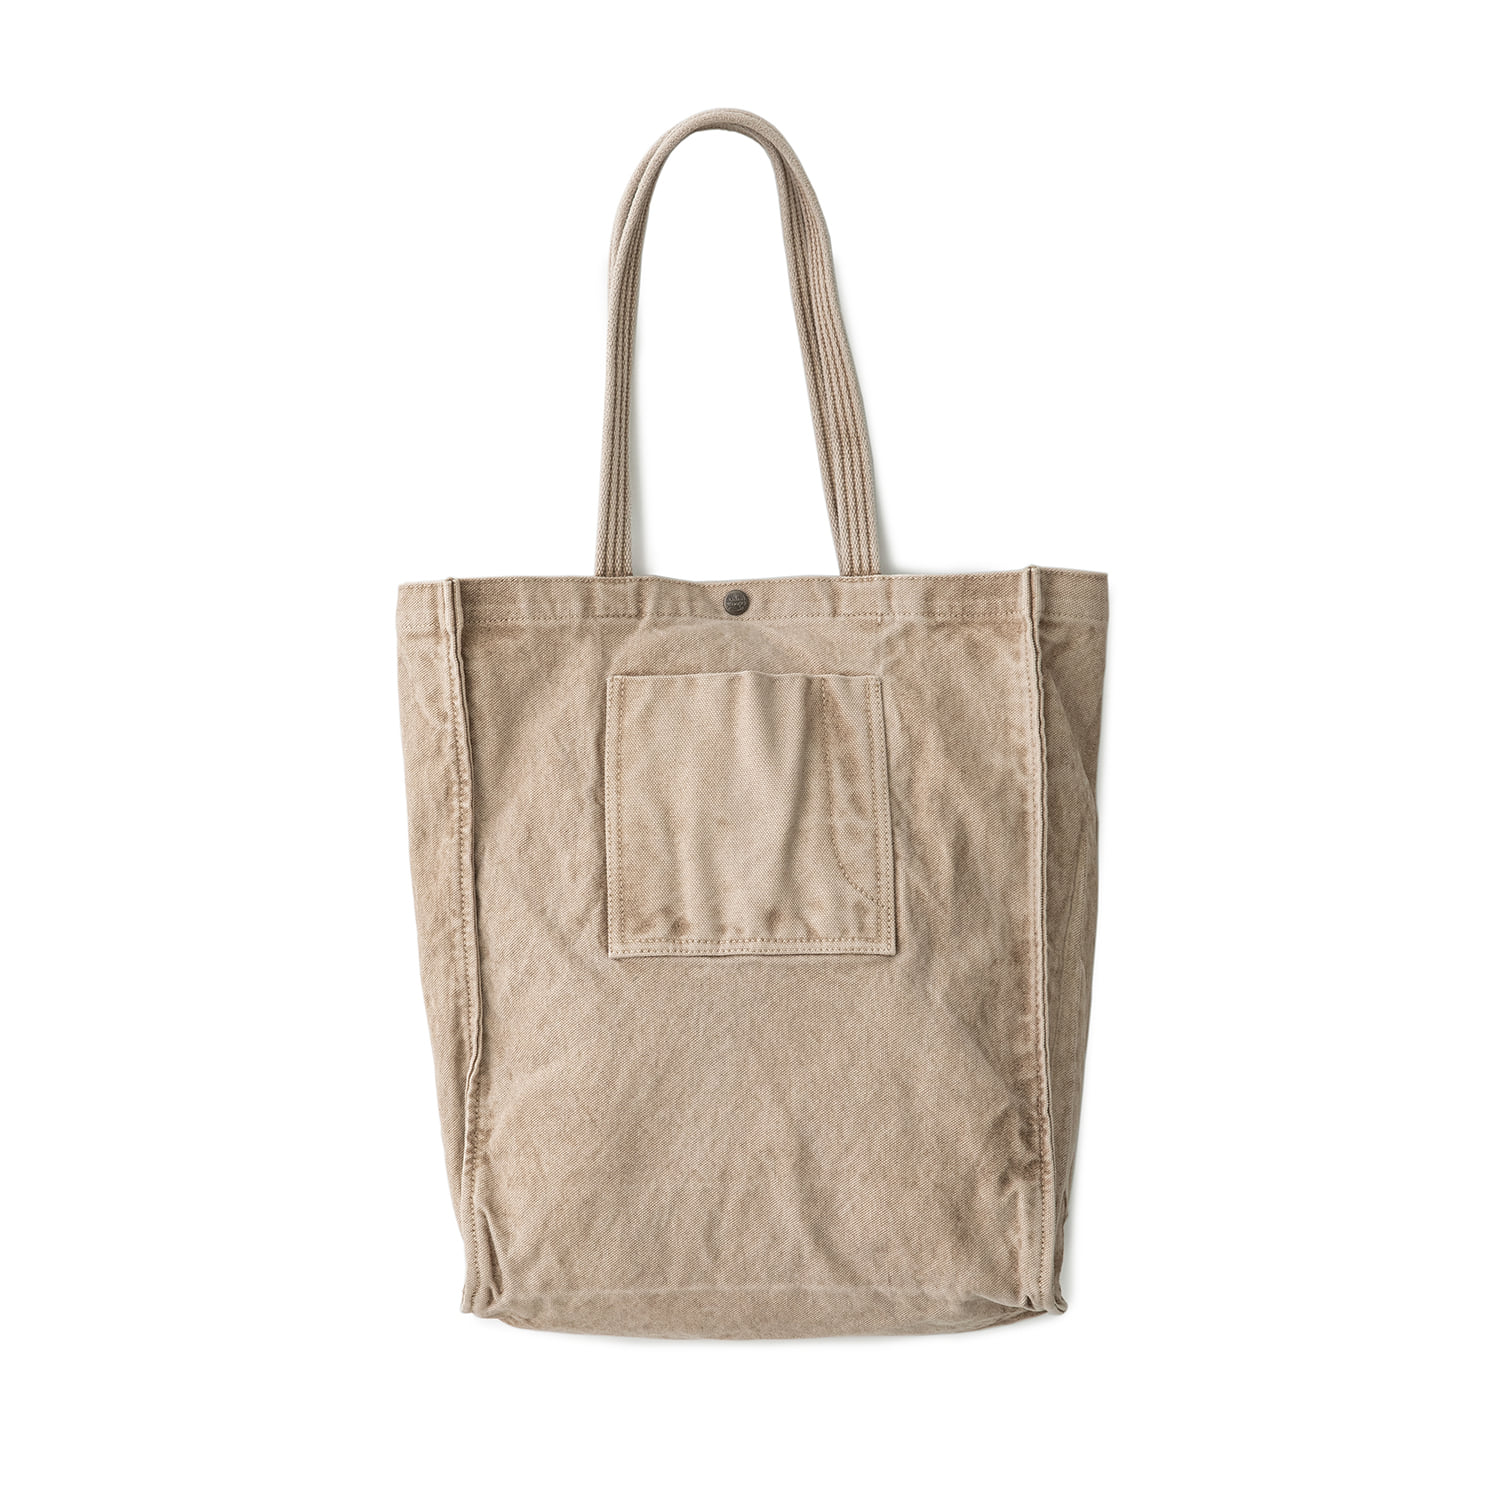 Stroller Grocery Garment Tote (Sand)